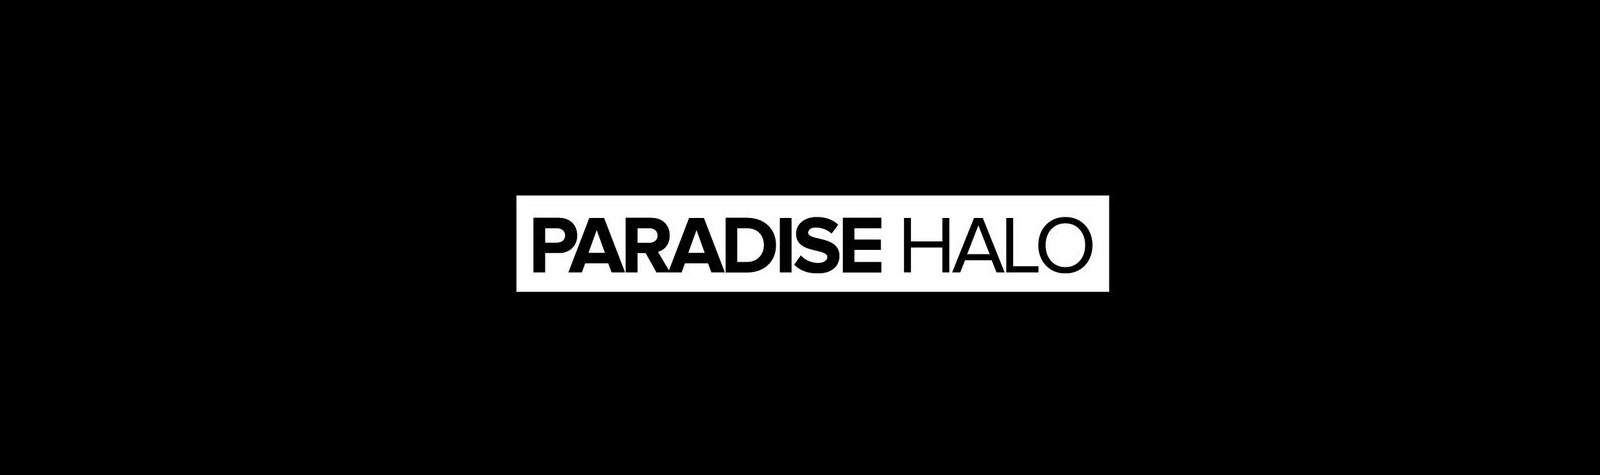 Paradise Halo – Every second matters! – Halo 5